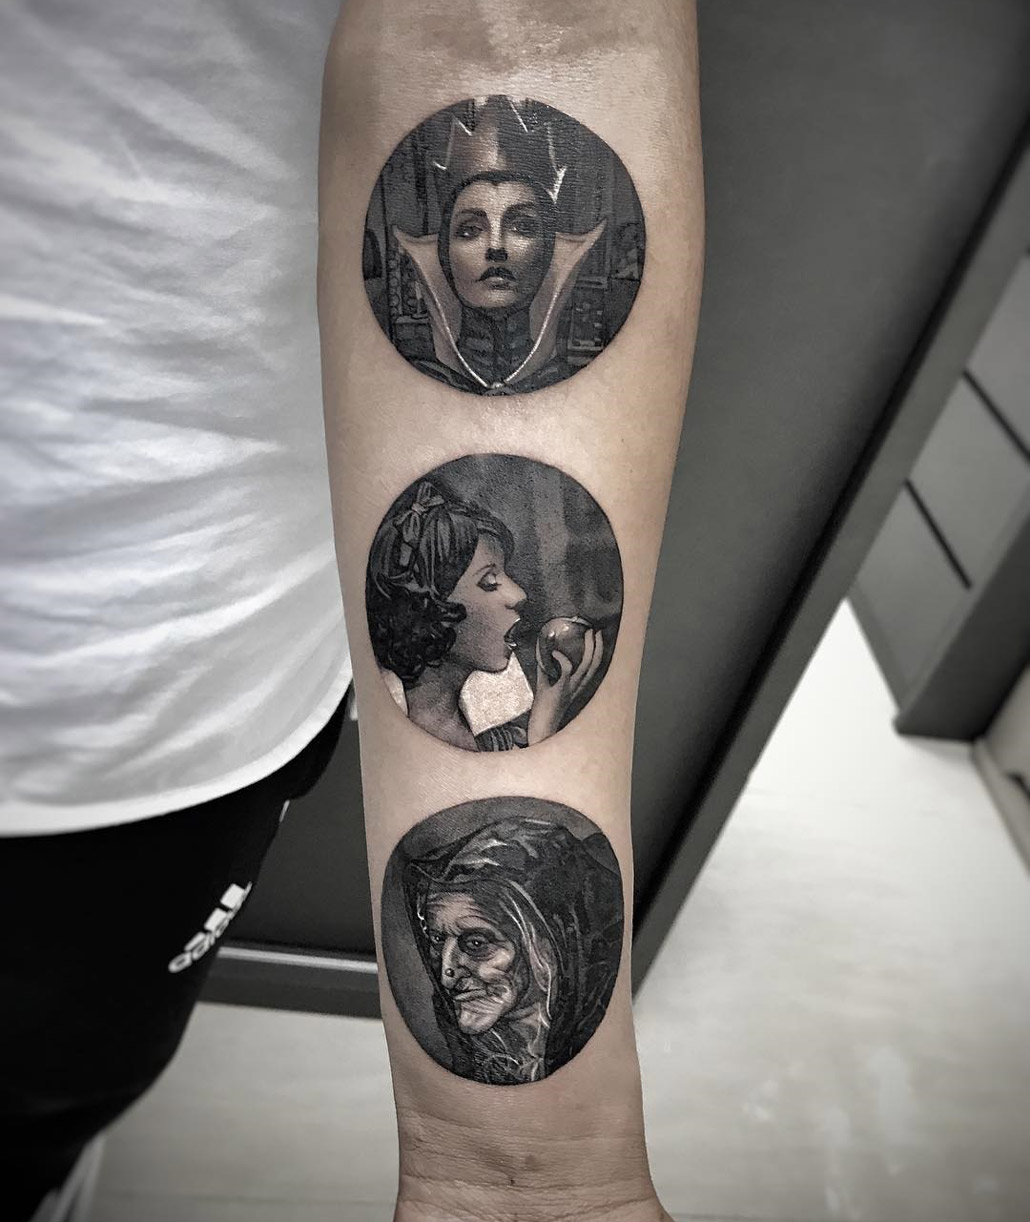 Snow White circular tattoo